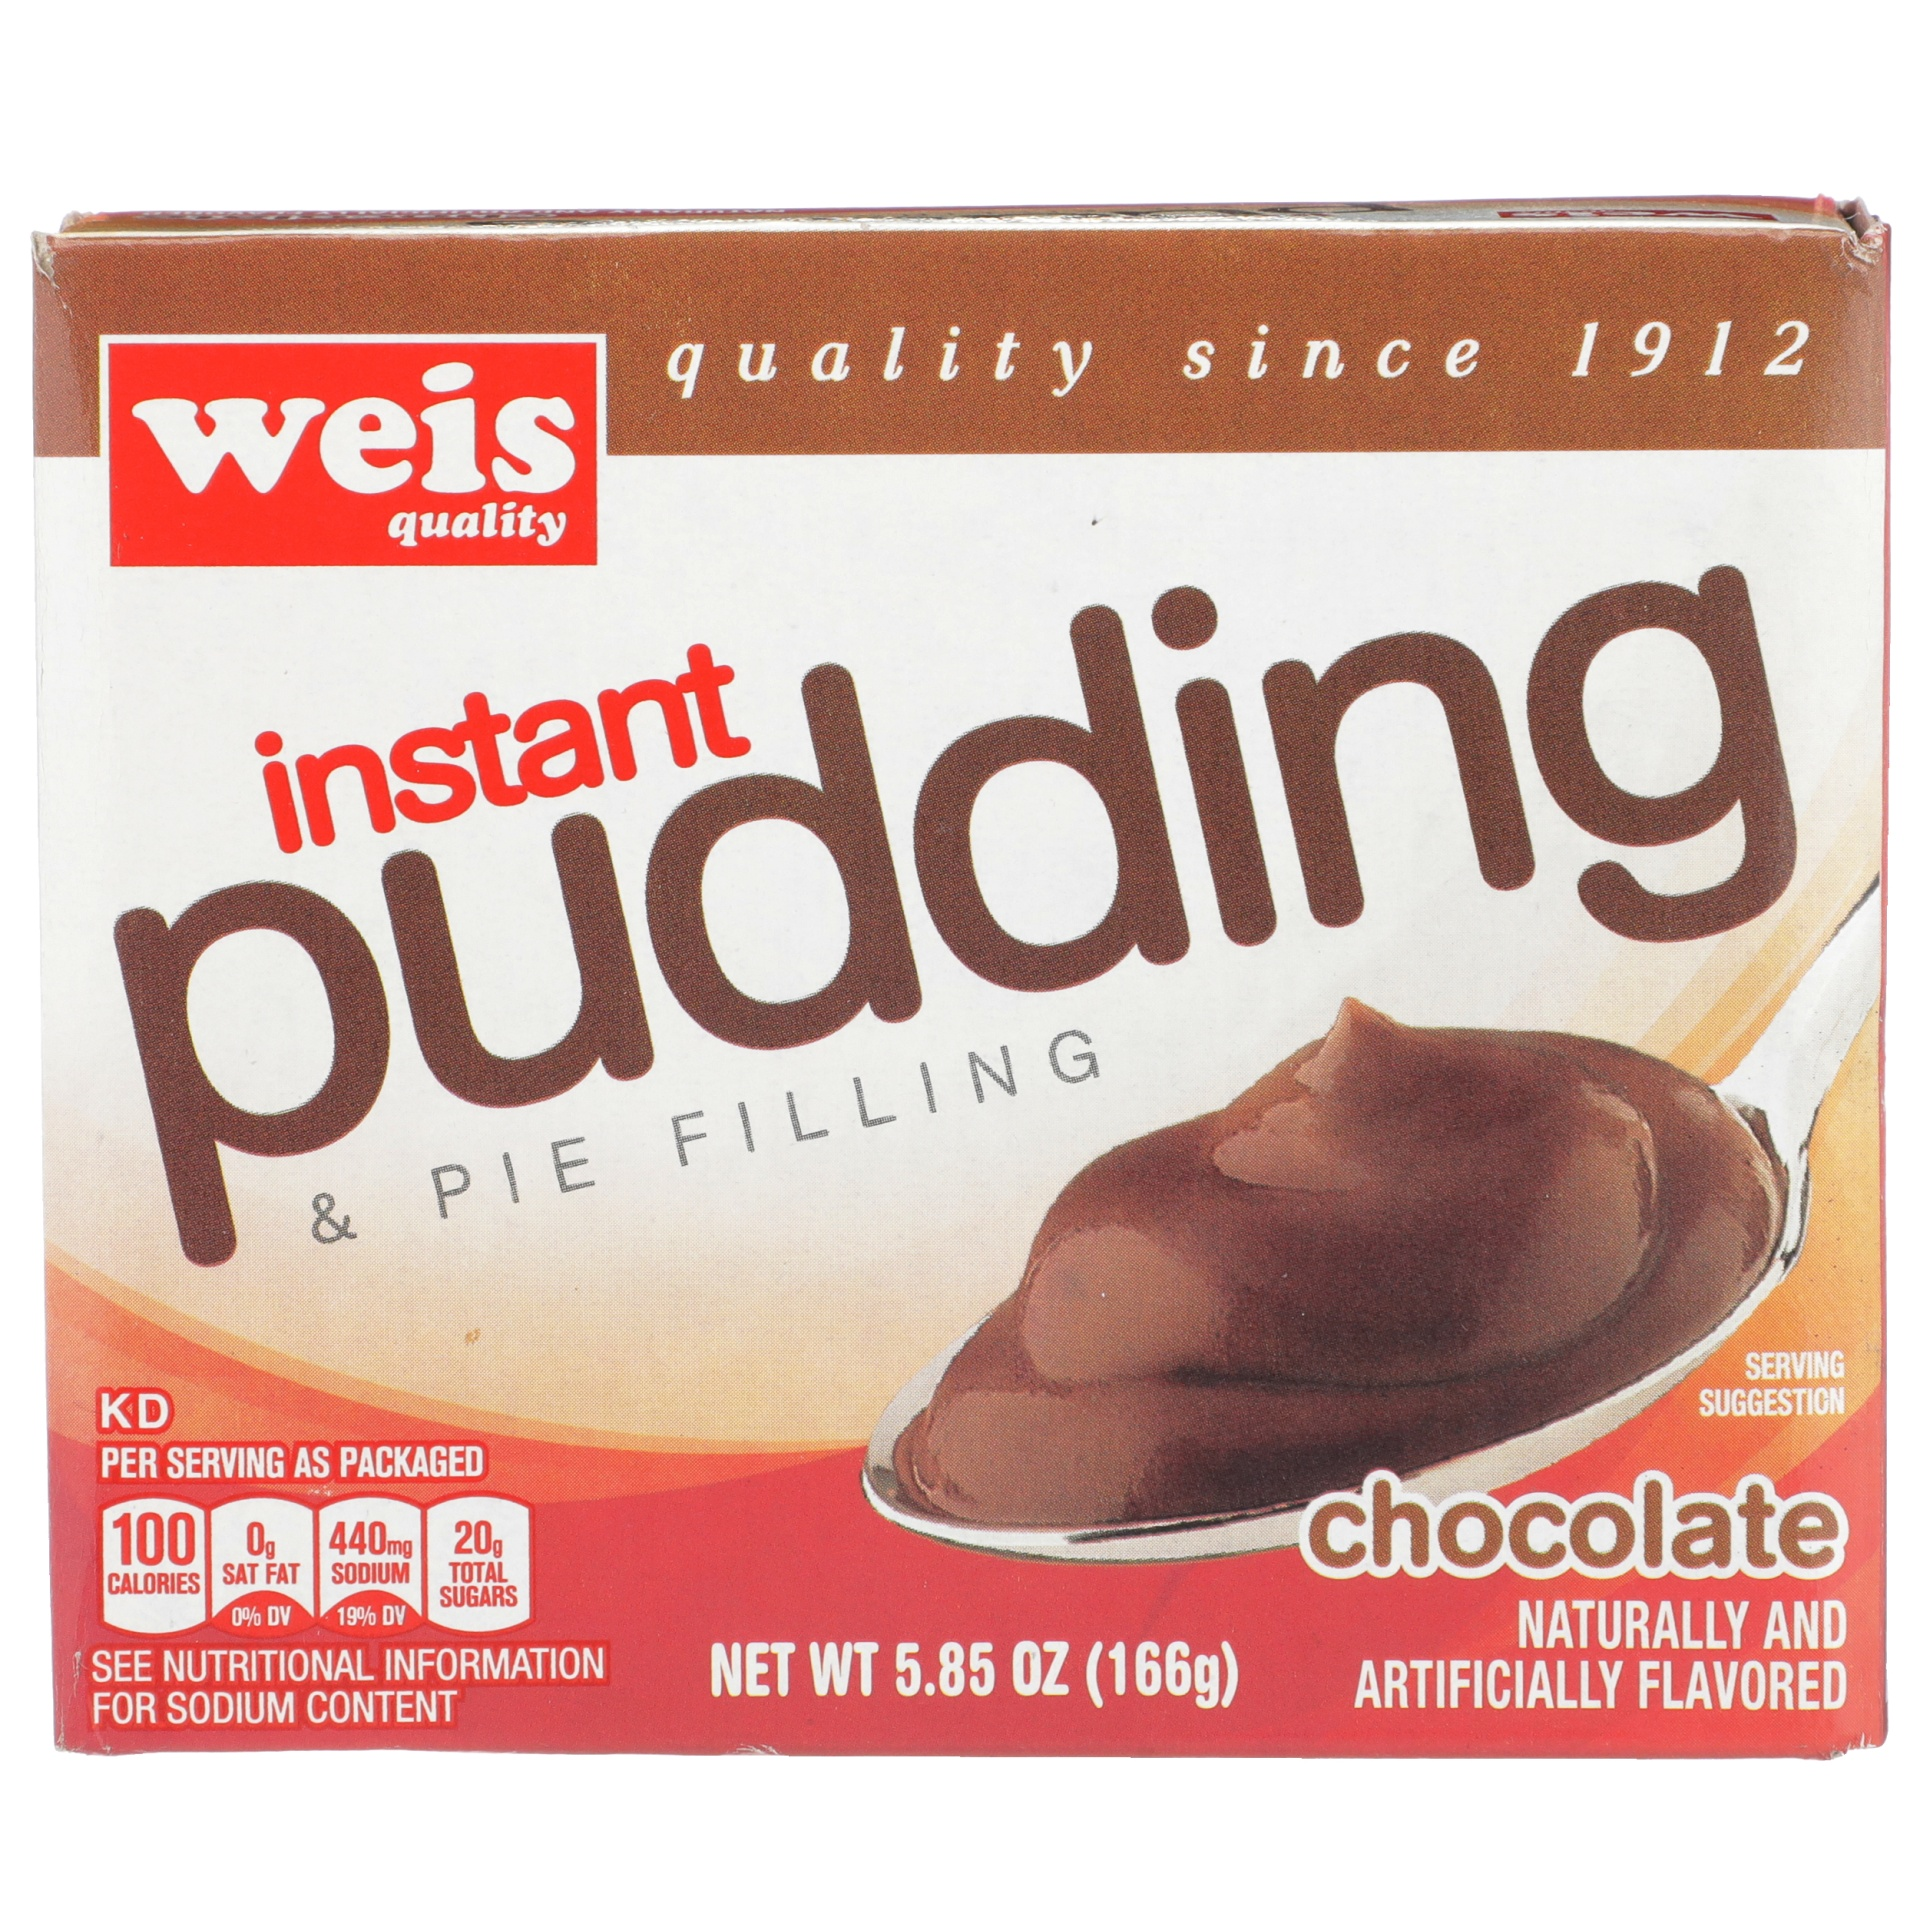 slide 1 of 6, Weis Quality Chocolate Flavored Instant Pudding and Pie Filling,